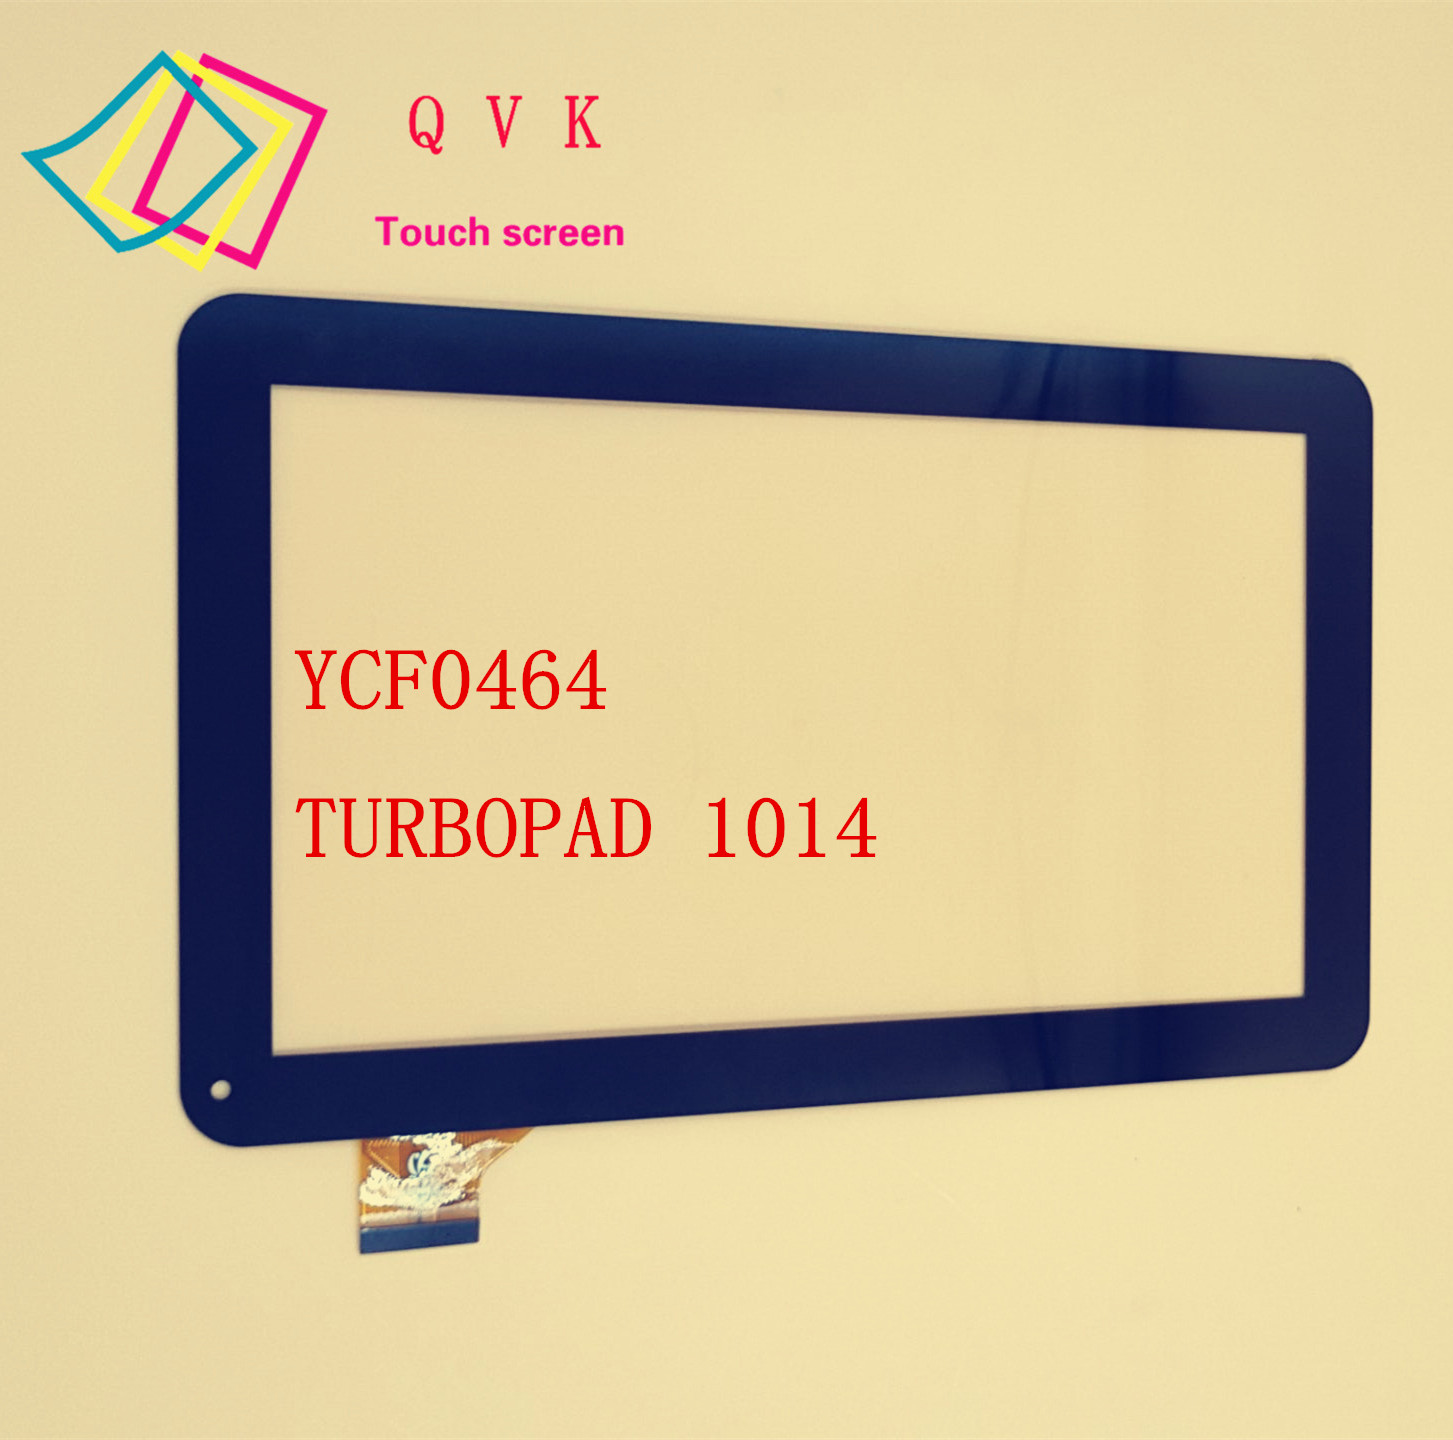 все цены на  Brand New 10.1'' Capacitive YCF0464-A for TURBOPAD 1014 Digma ids10 Touch Screen Panel Touchscreen Digitizer  онлайн